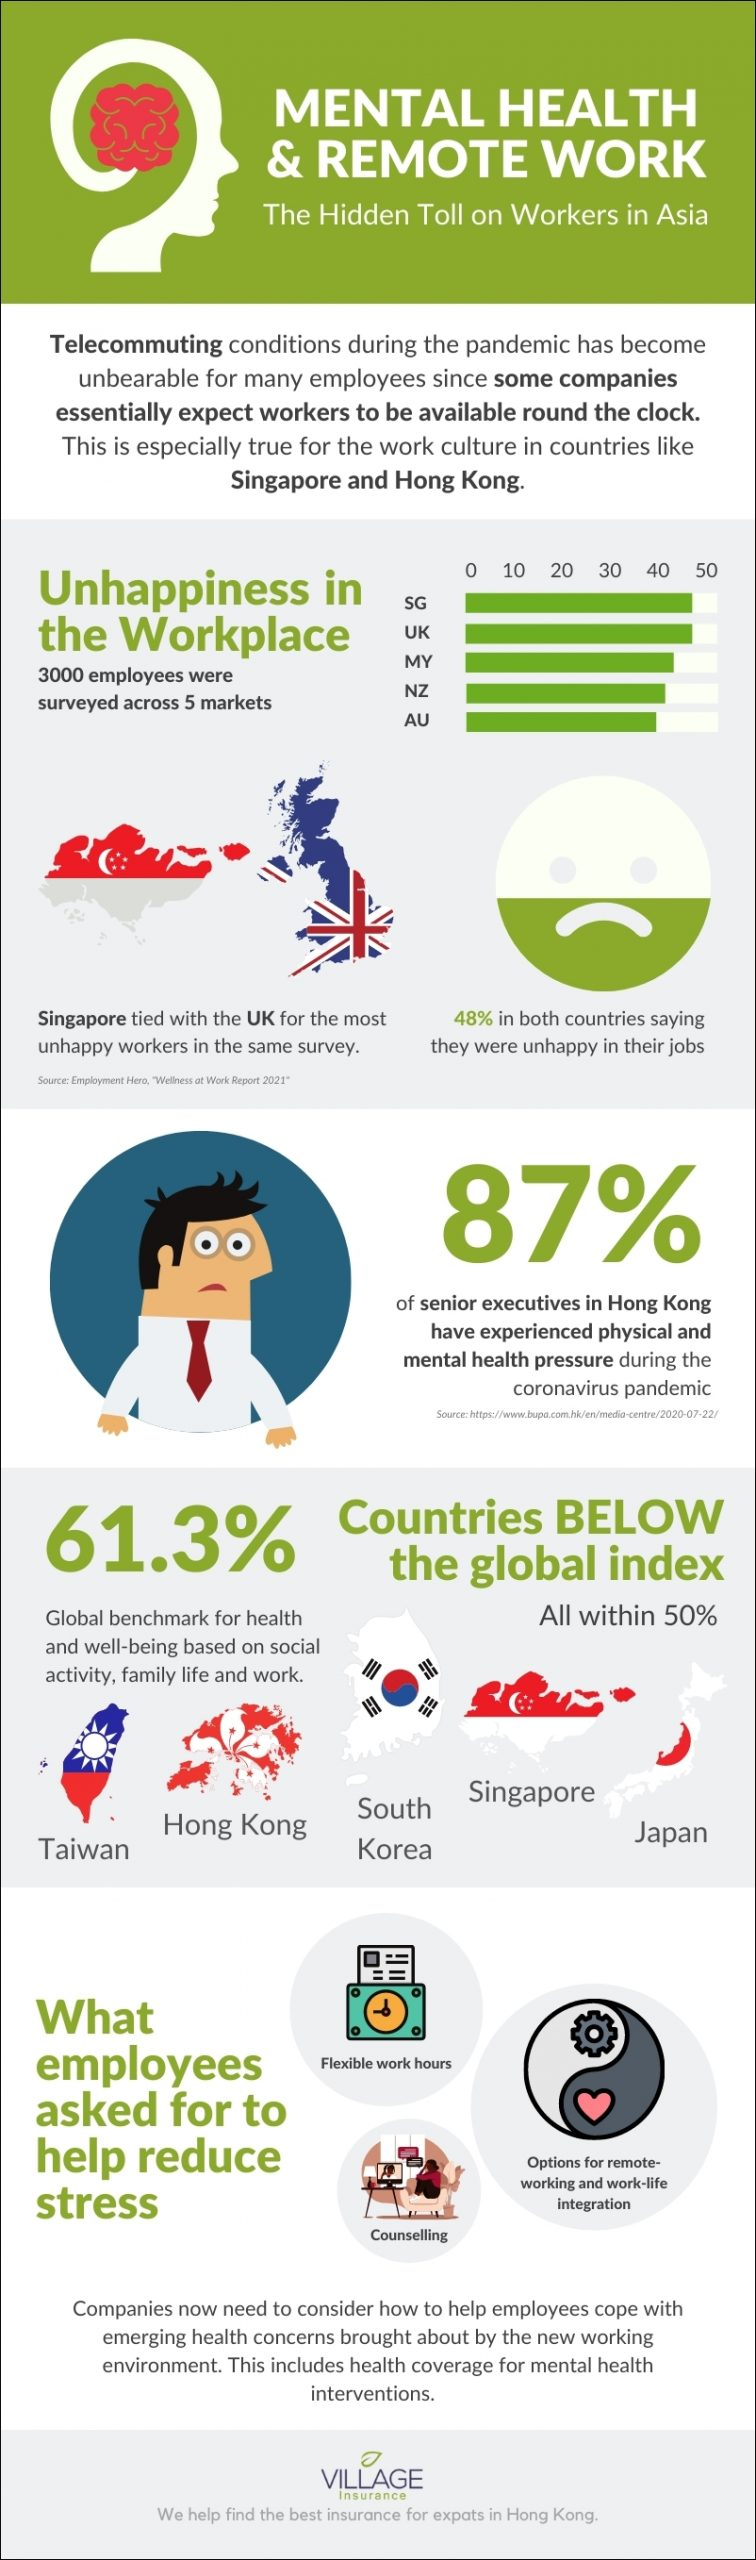 Village Insurance Direct: Infographic on the hidden mental toll of remote work during the pandemic